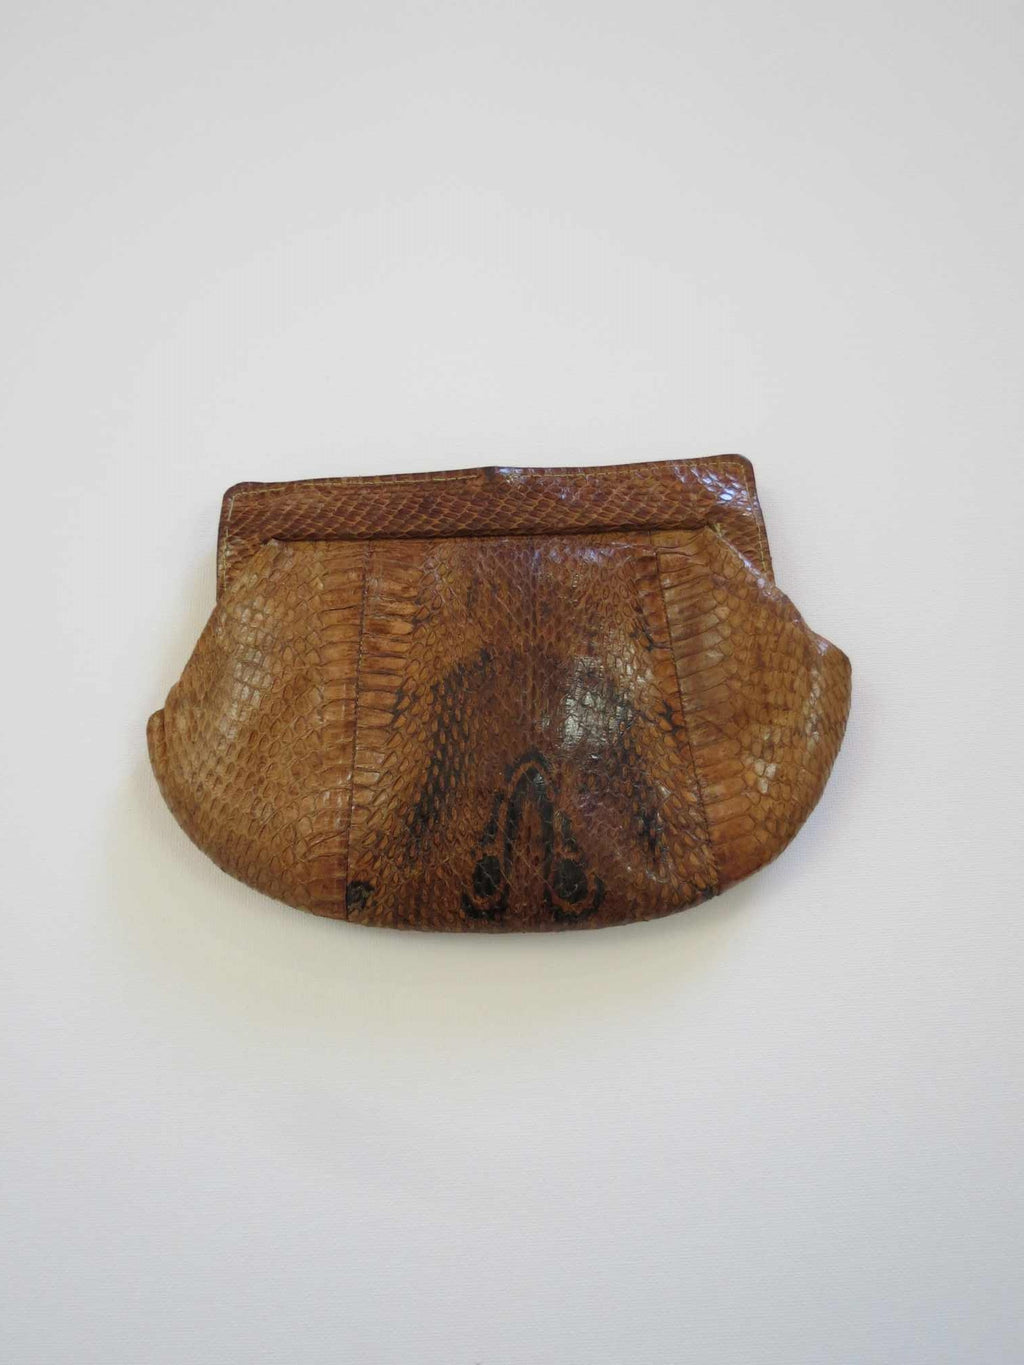 vintage brown snake skin purse or clutch bag 1950s 1960s